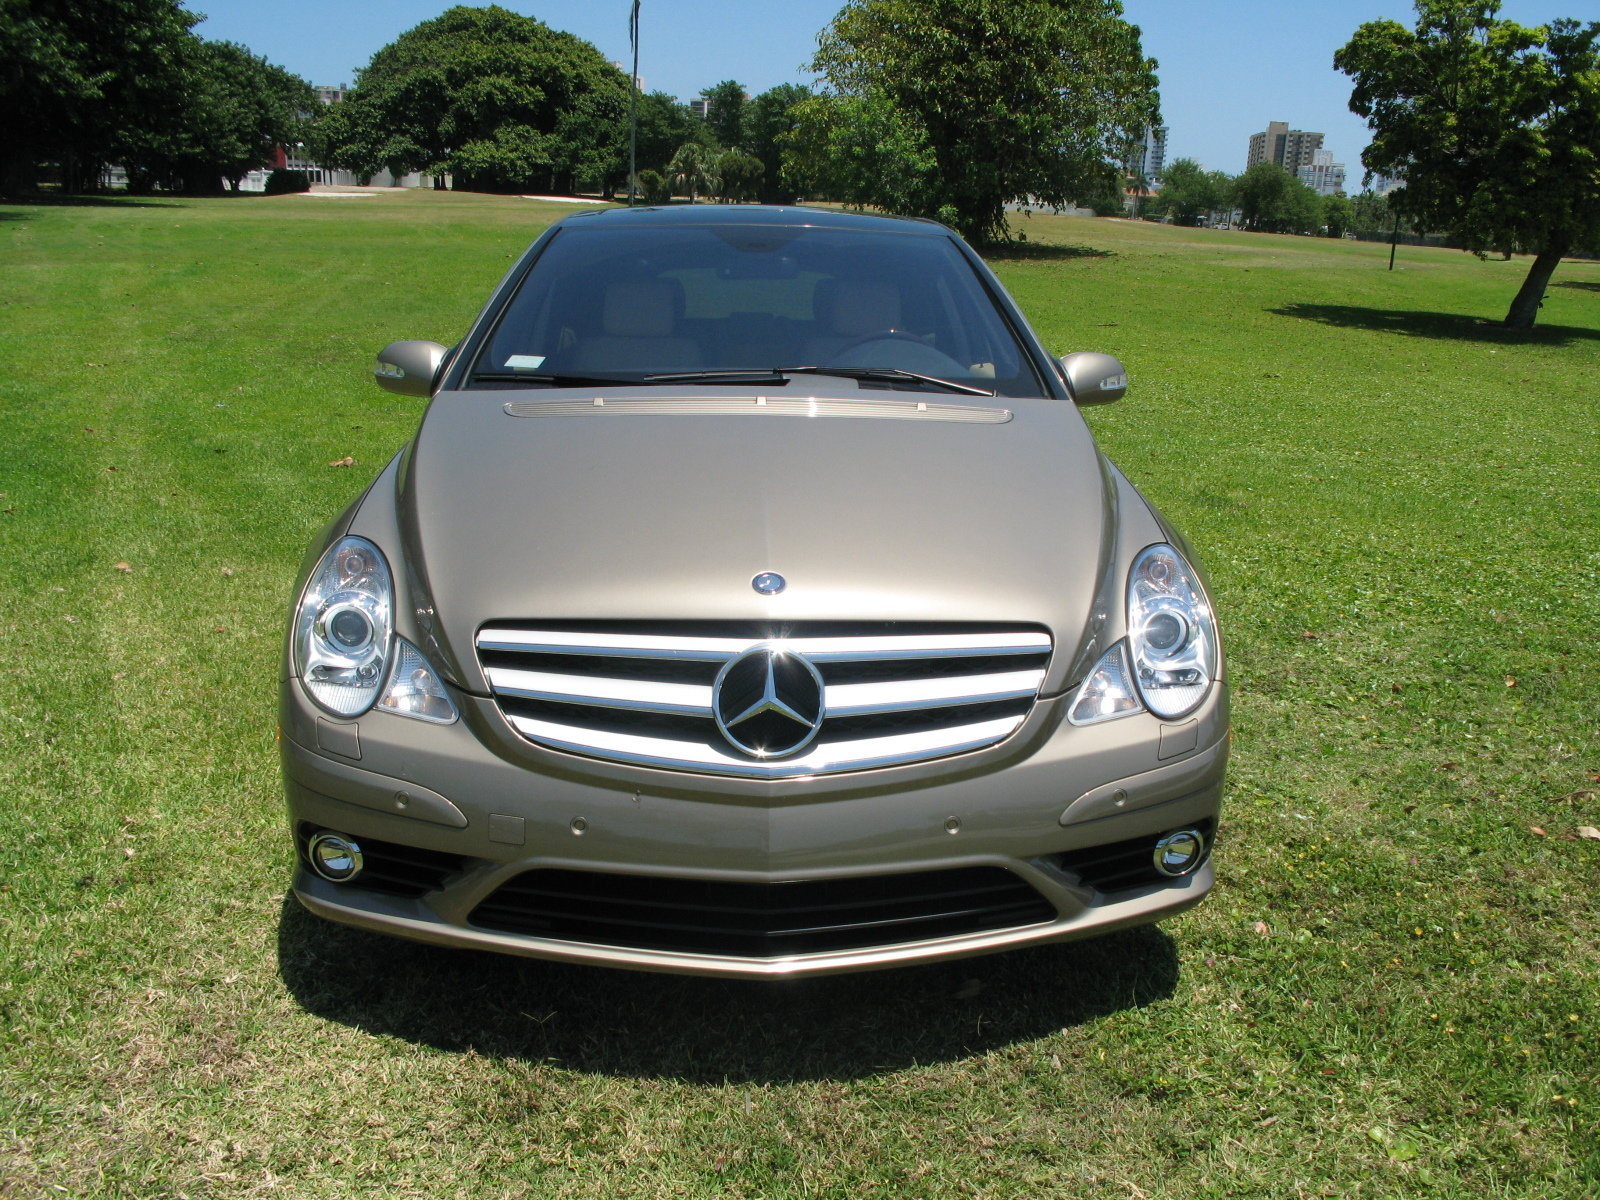 2008 mercedes r320 cdi 4 matic picture 248579 car review top speed. Black Bedroom Furniture Sets. Home Design Ideas